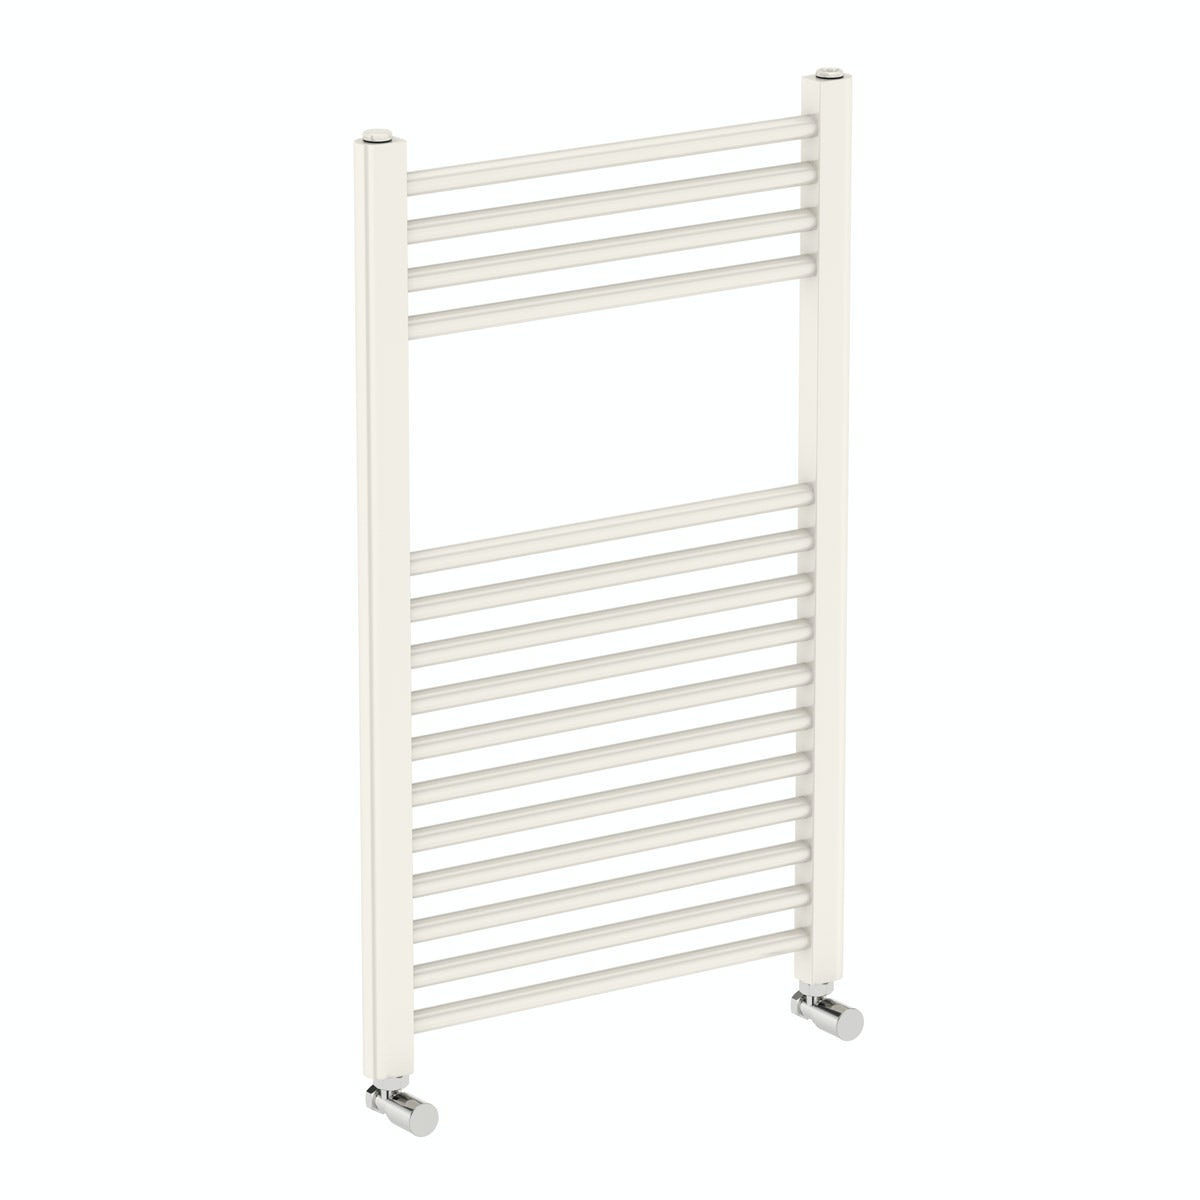 Orchard Eden round white heated towel rail 800 x 490 offer pack